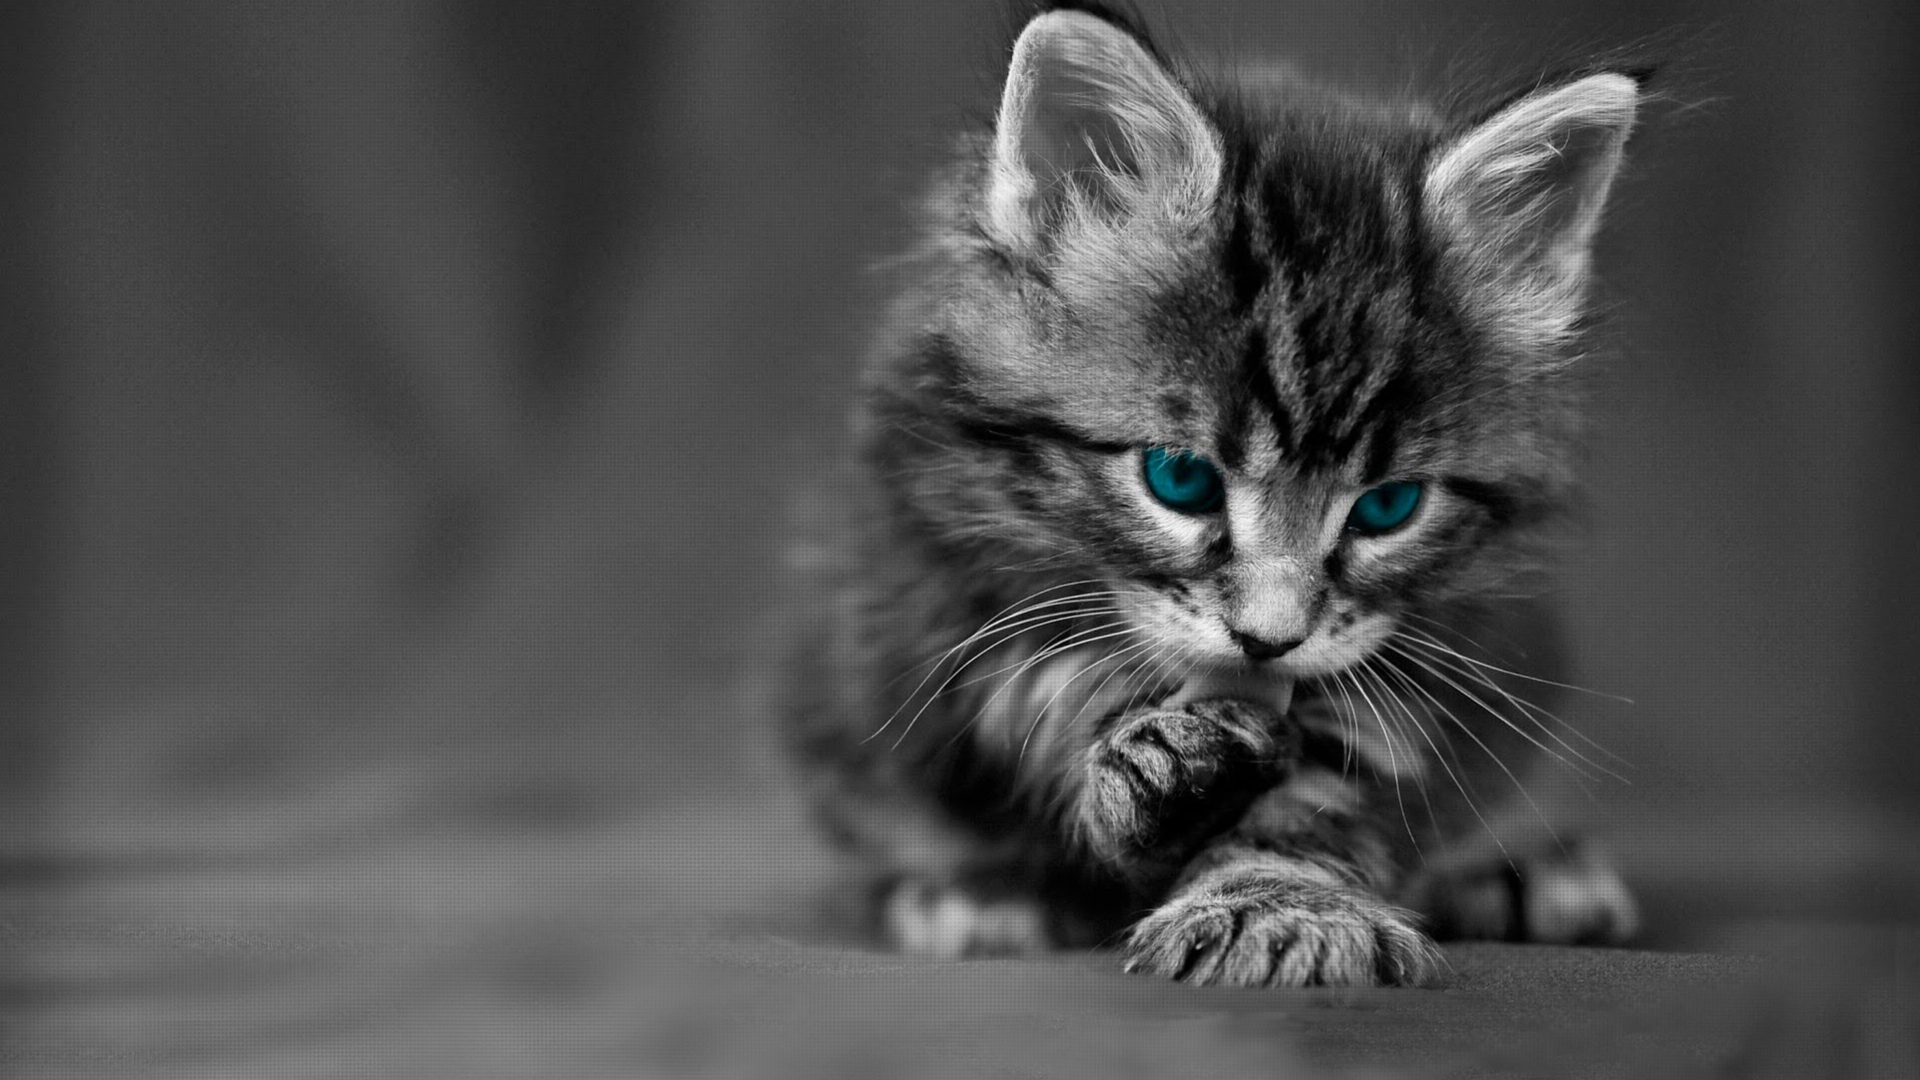 Gif Wallpaper Iphone Desktop Wallpaper Hd Gray Kitten With Blue Eyes